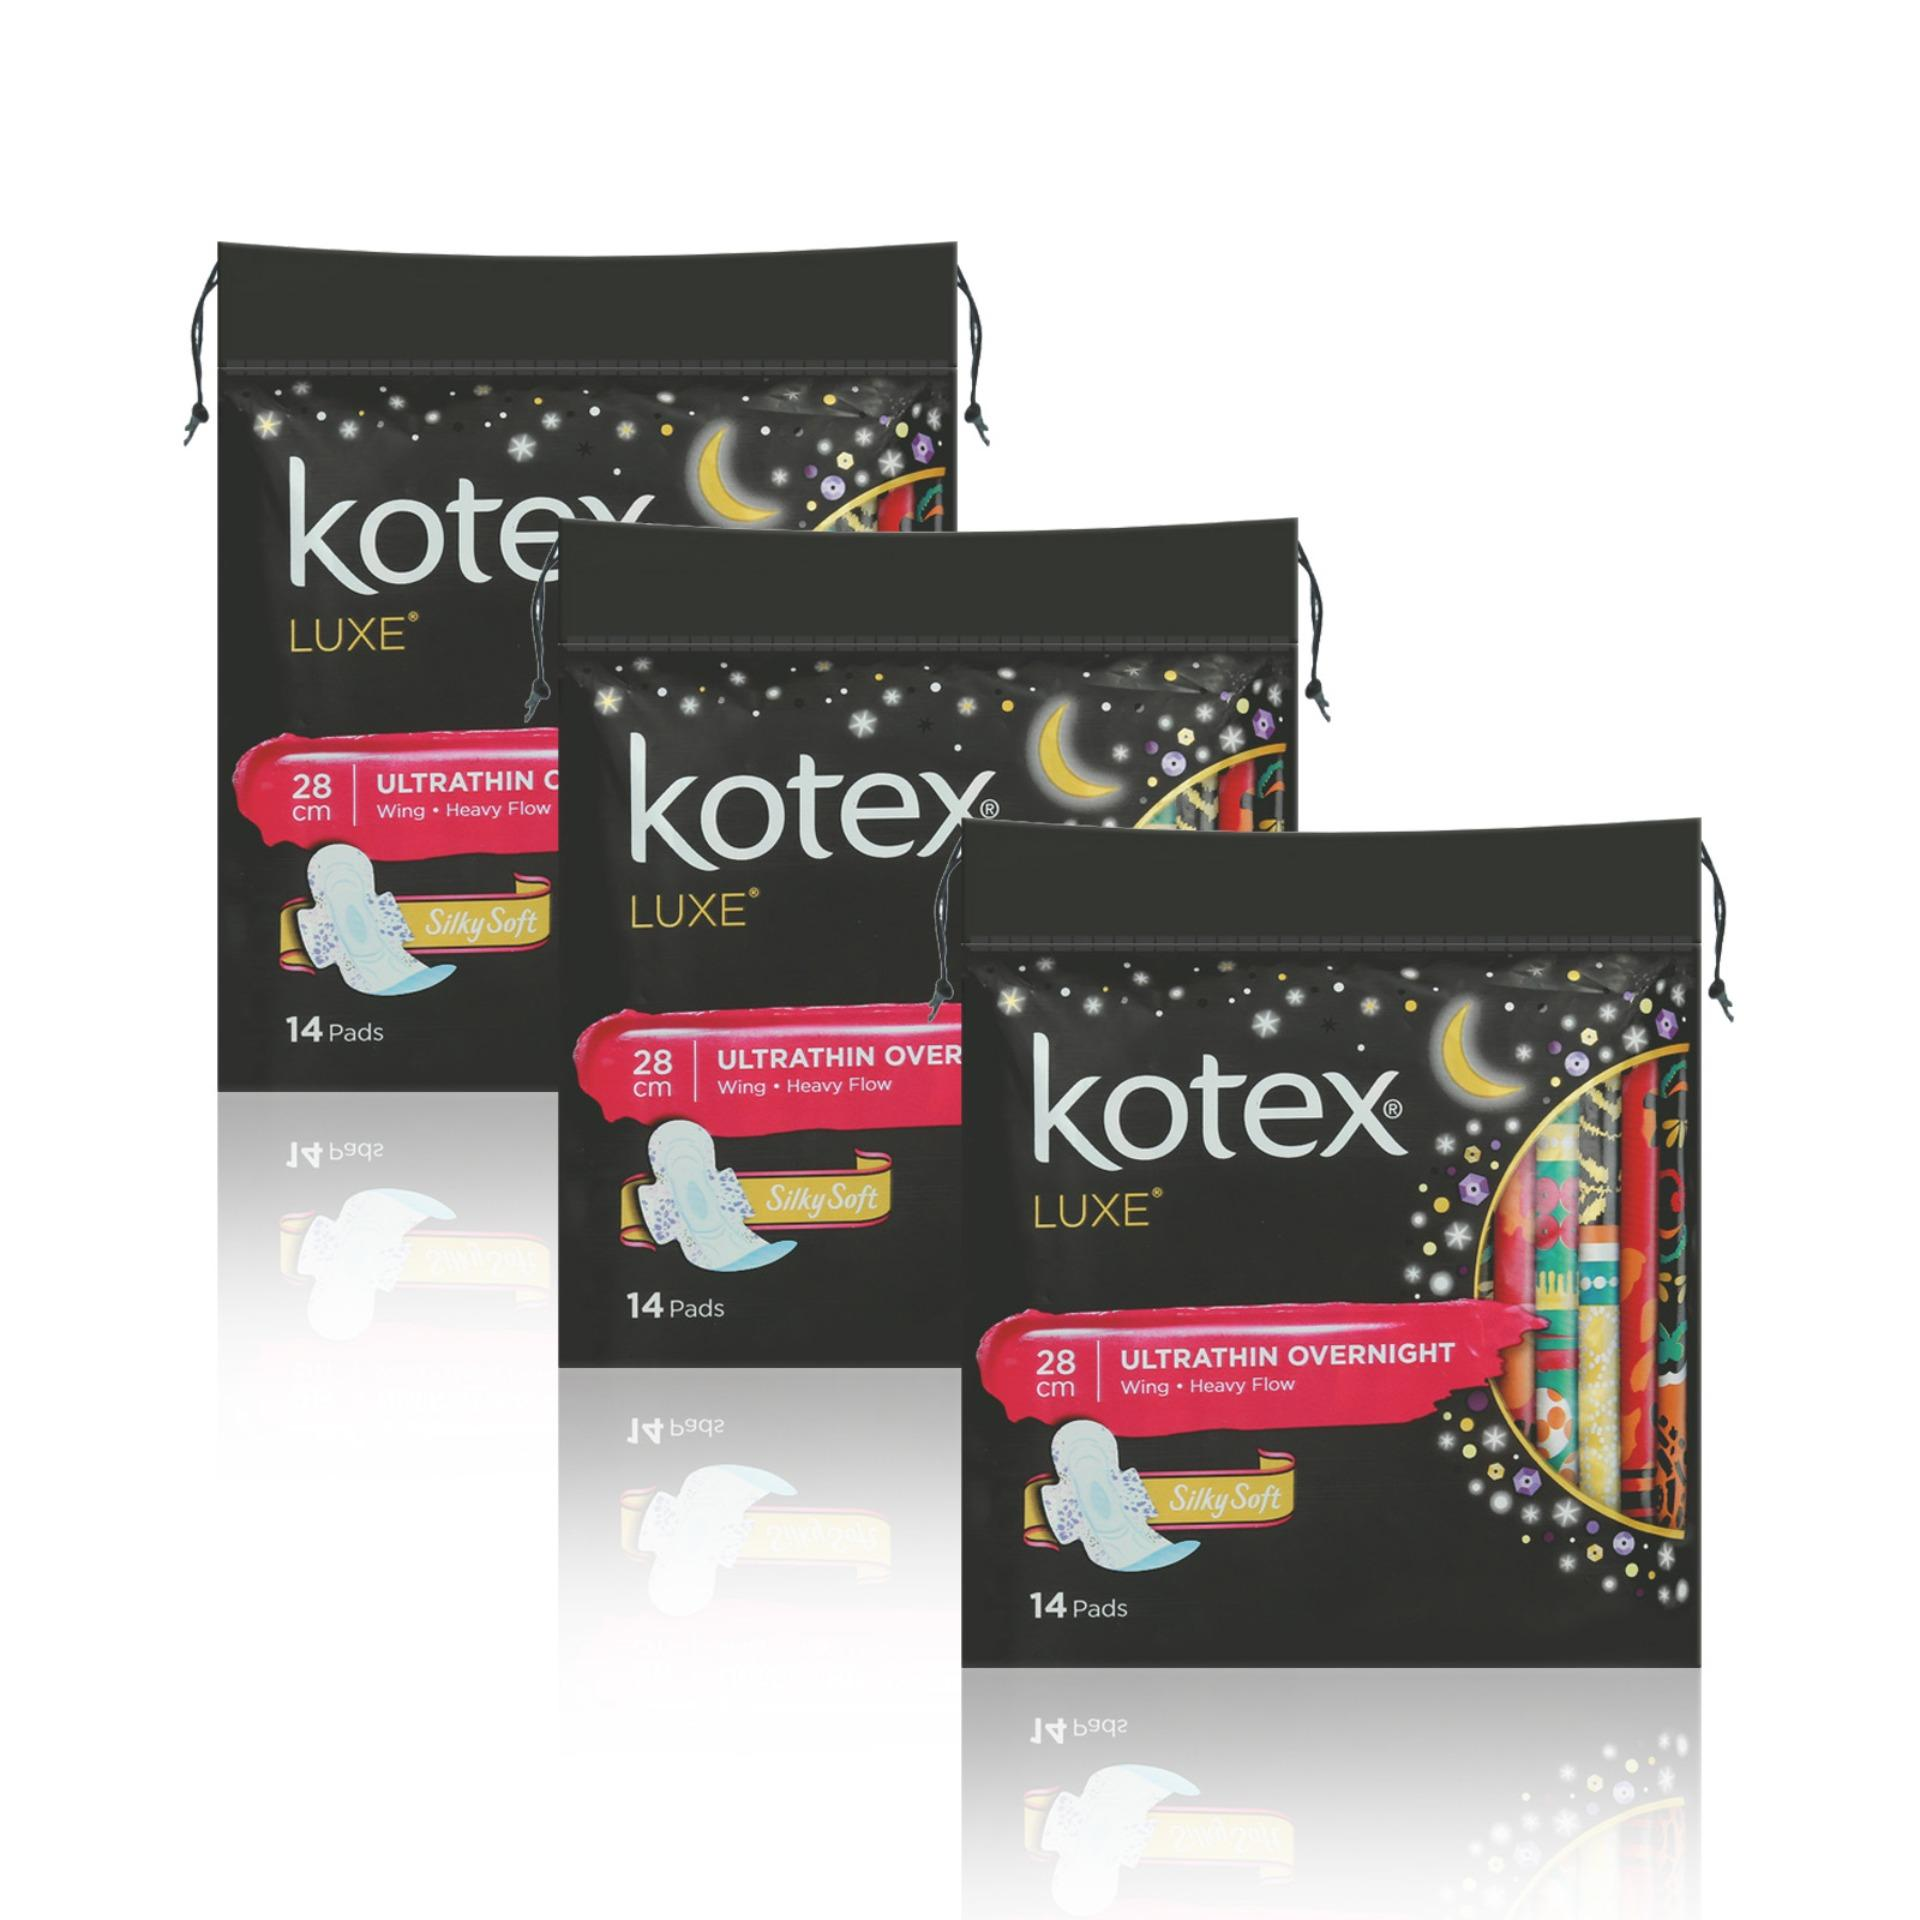 Kotex Pads Luxe Ultra Thin Wing Overnight 28Cm 14Pcs X 3 Packs Shop